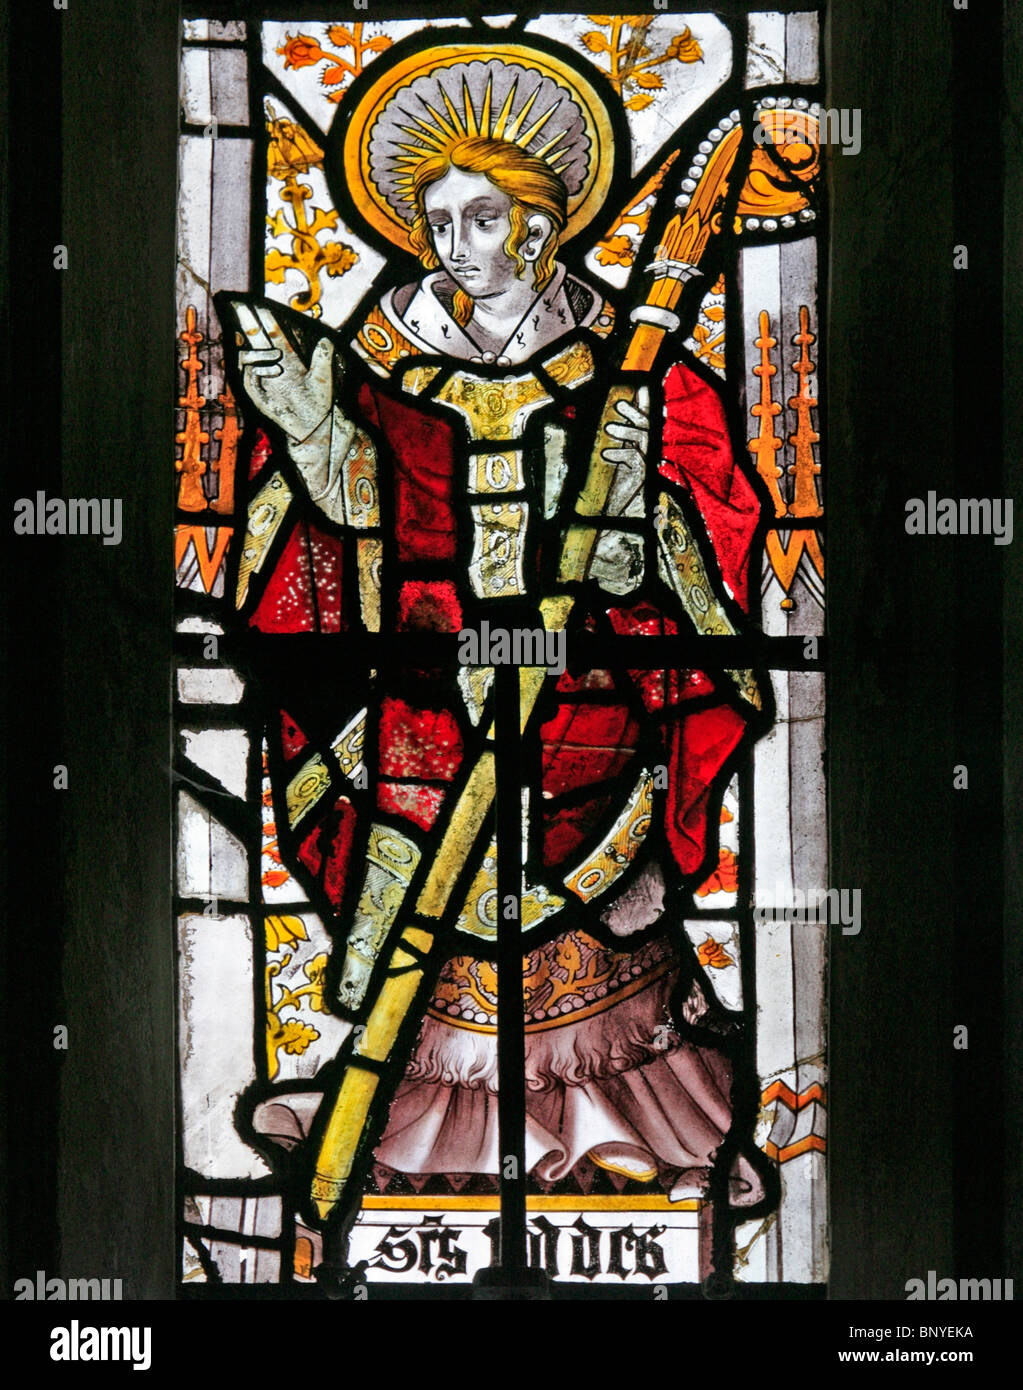 A 16th century stained glass window thought to have come from Germany depicting Saint Chad or Ceadda Stock Photo